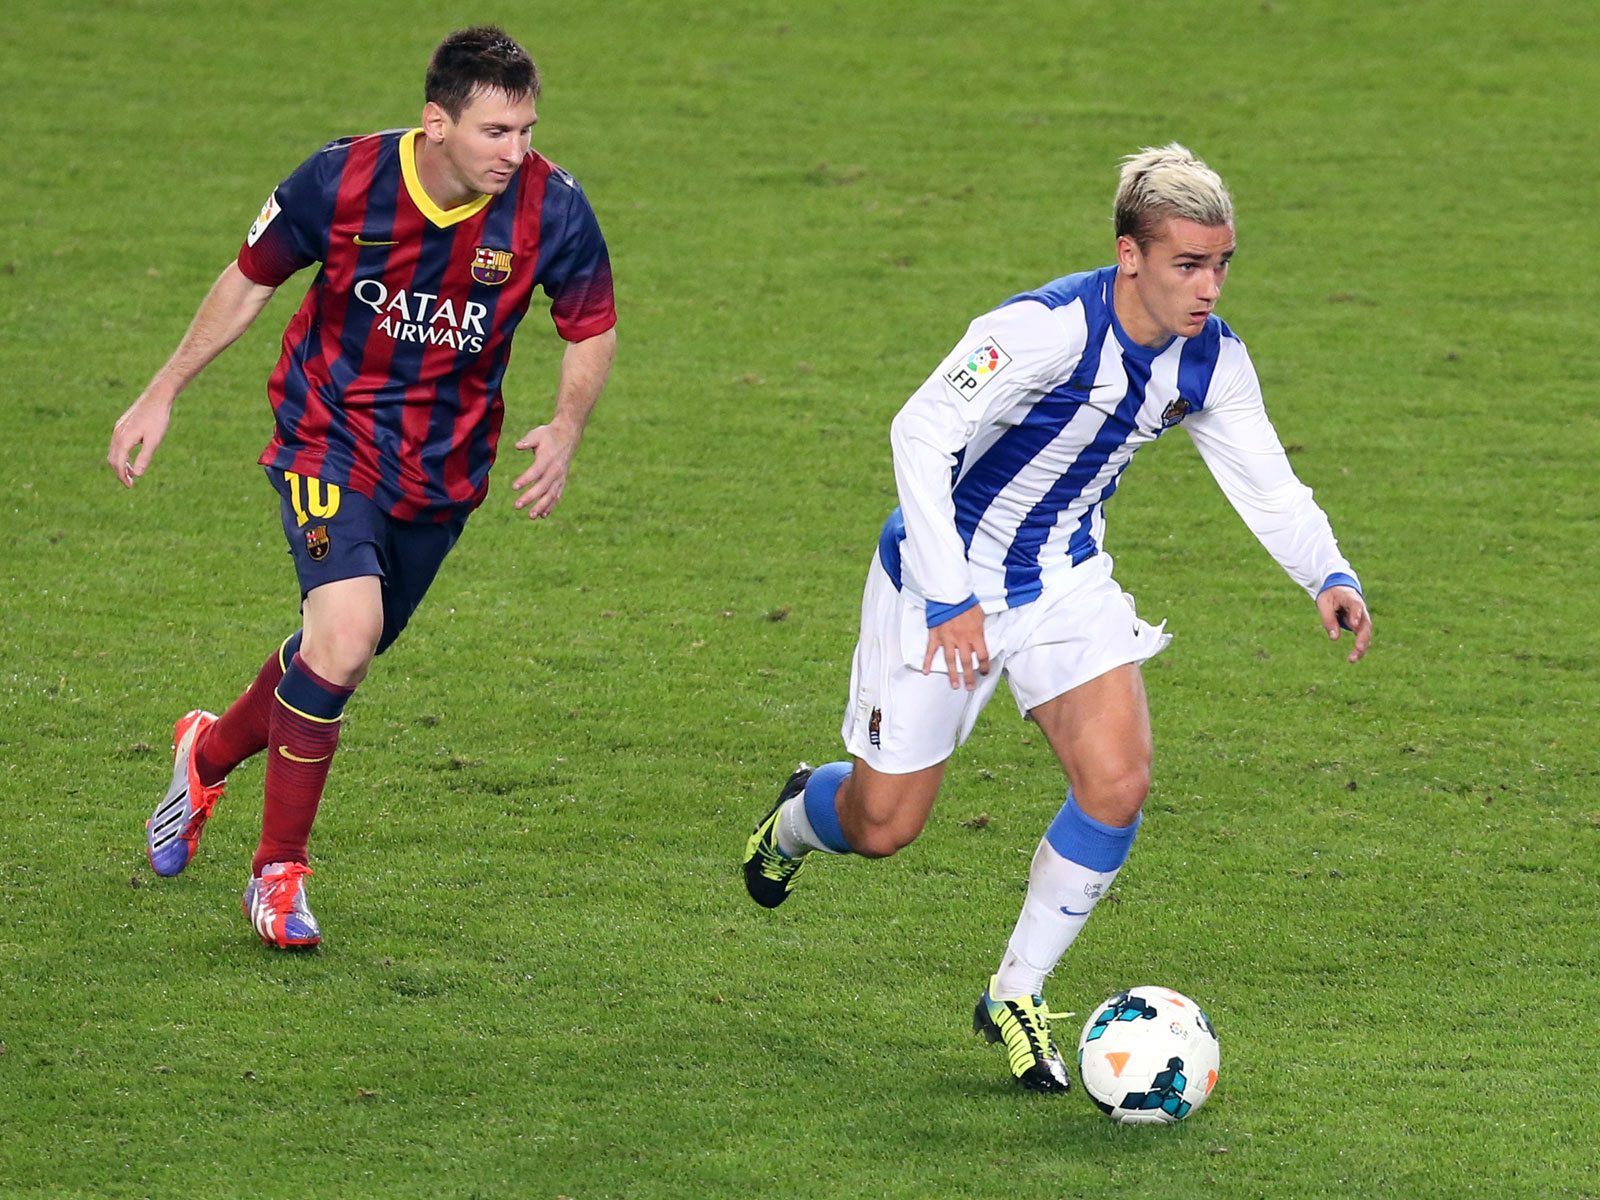 Antoine Griezmann, playing for Real Sociedad, against Lionel Messi and Barcelona